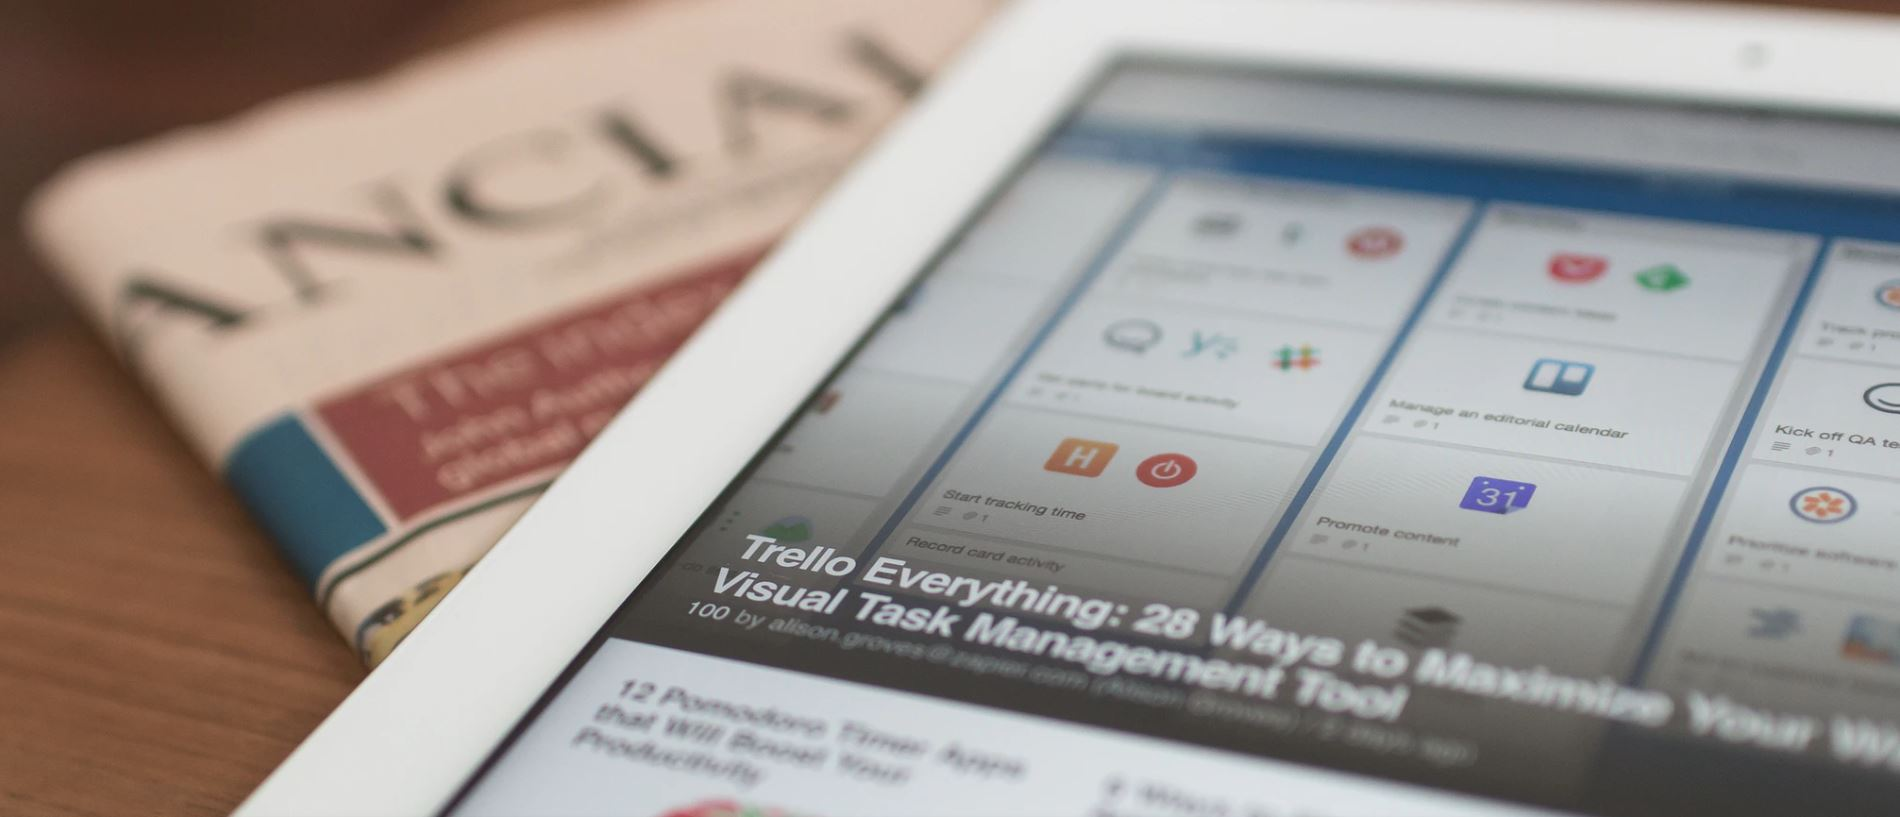 Tablet on newspaper articles